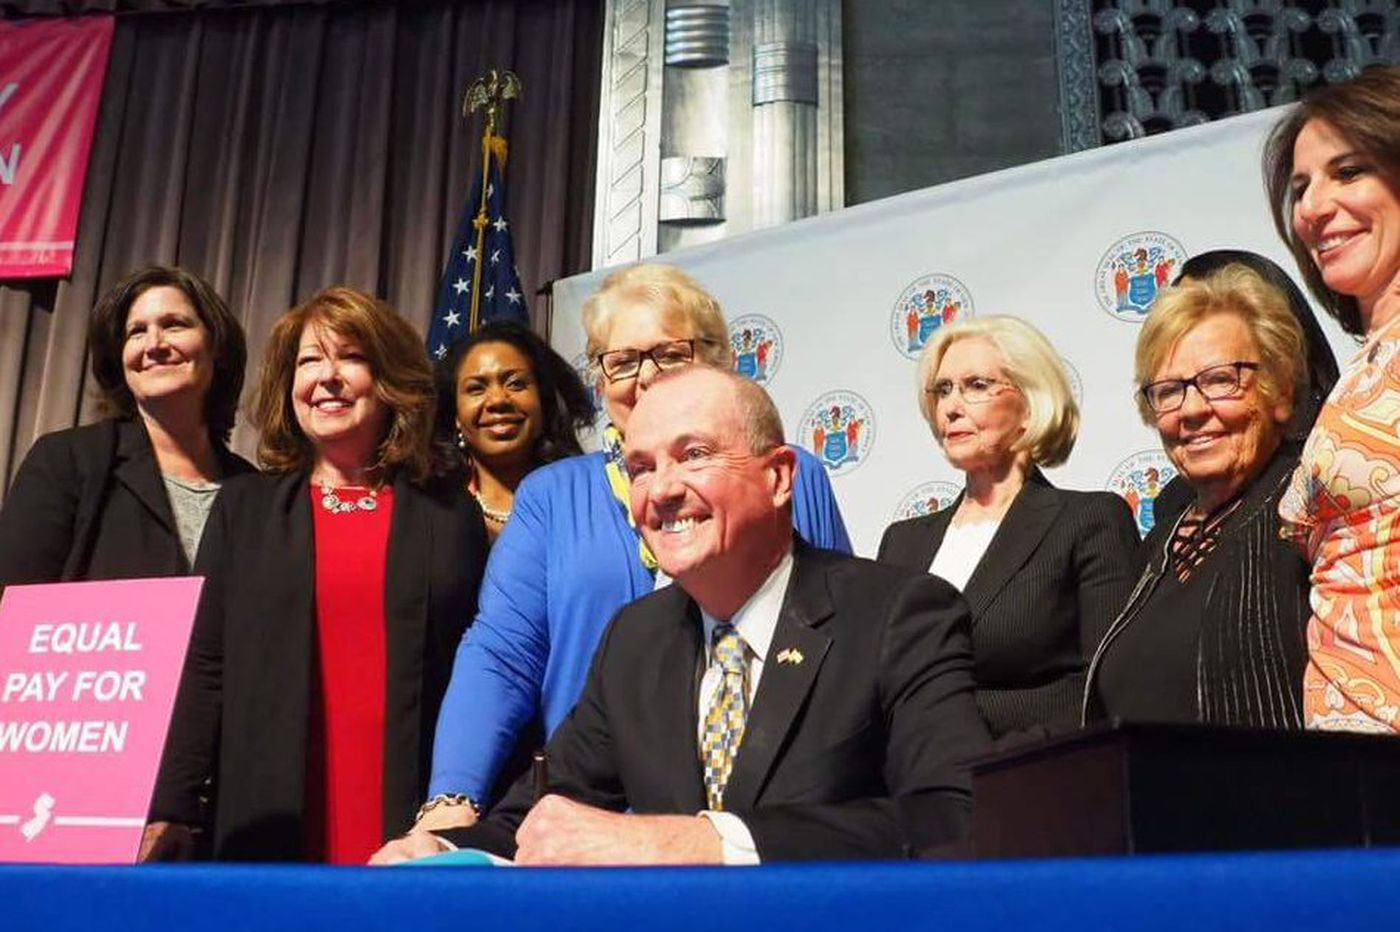 Working women, rejoice: New Jersey now has the strongest equal-pay law in America | Opinion